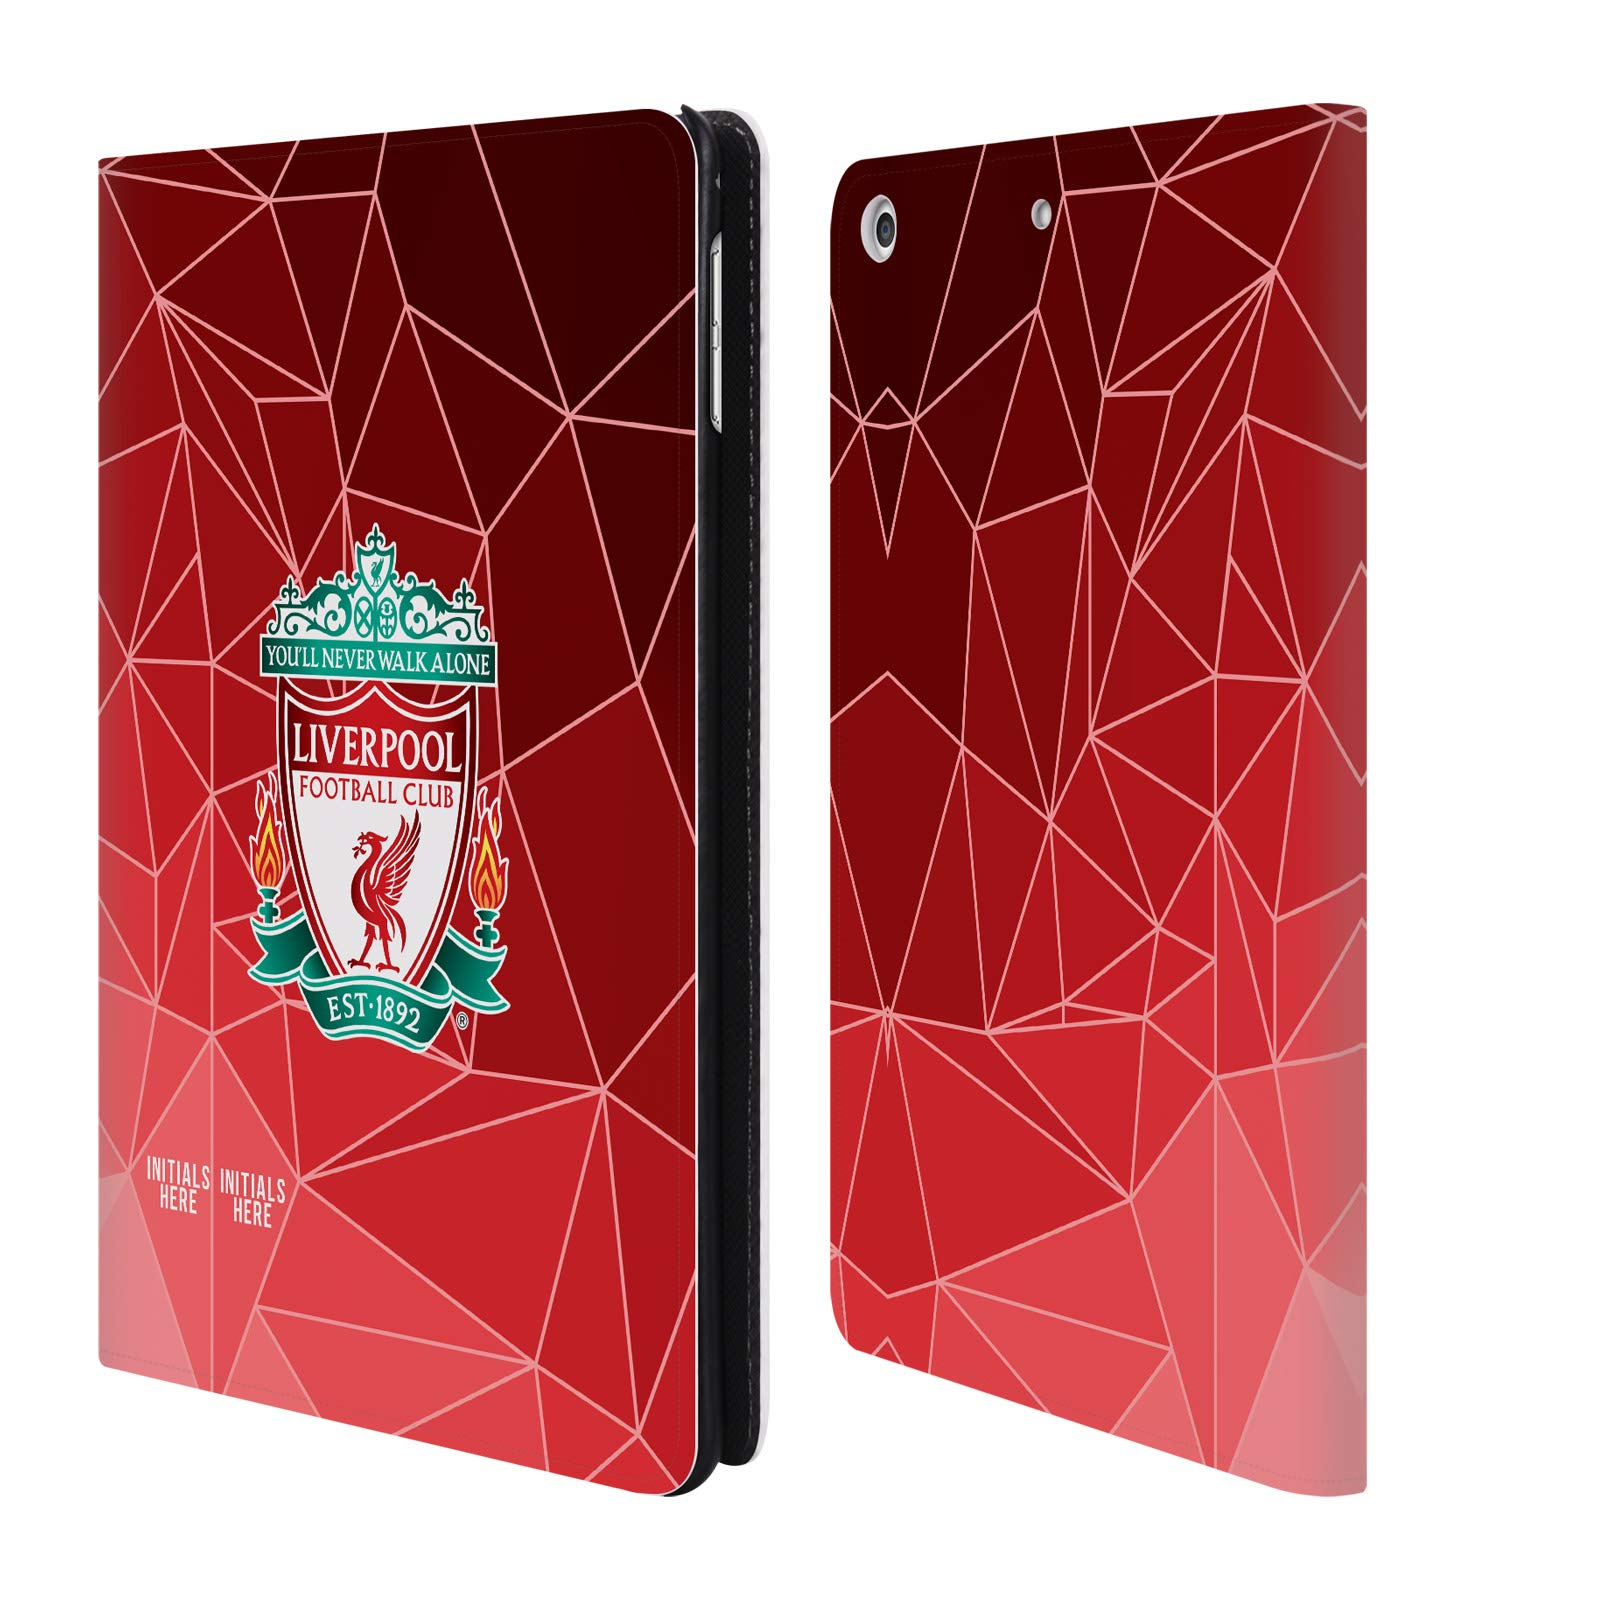 Custom Customized Personalized Liverpool Football Club Geometric 2018/19 PU Leather Book Wallet Case Cover for iPad Mini 4